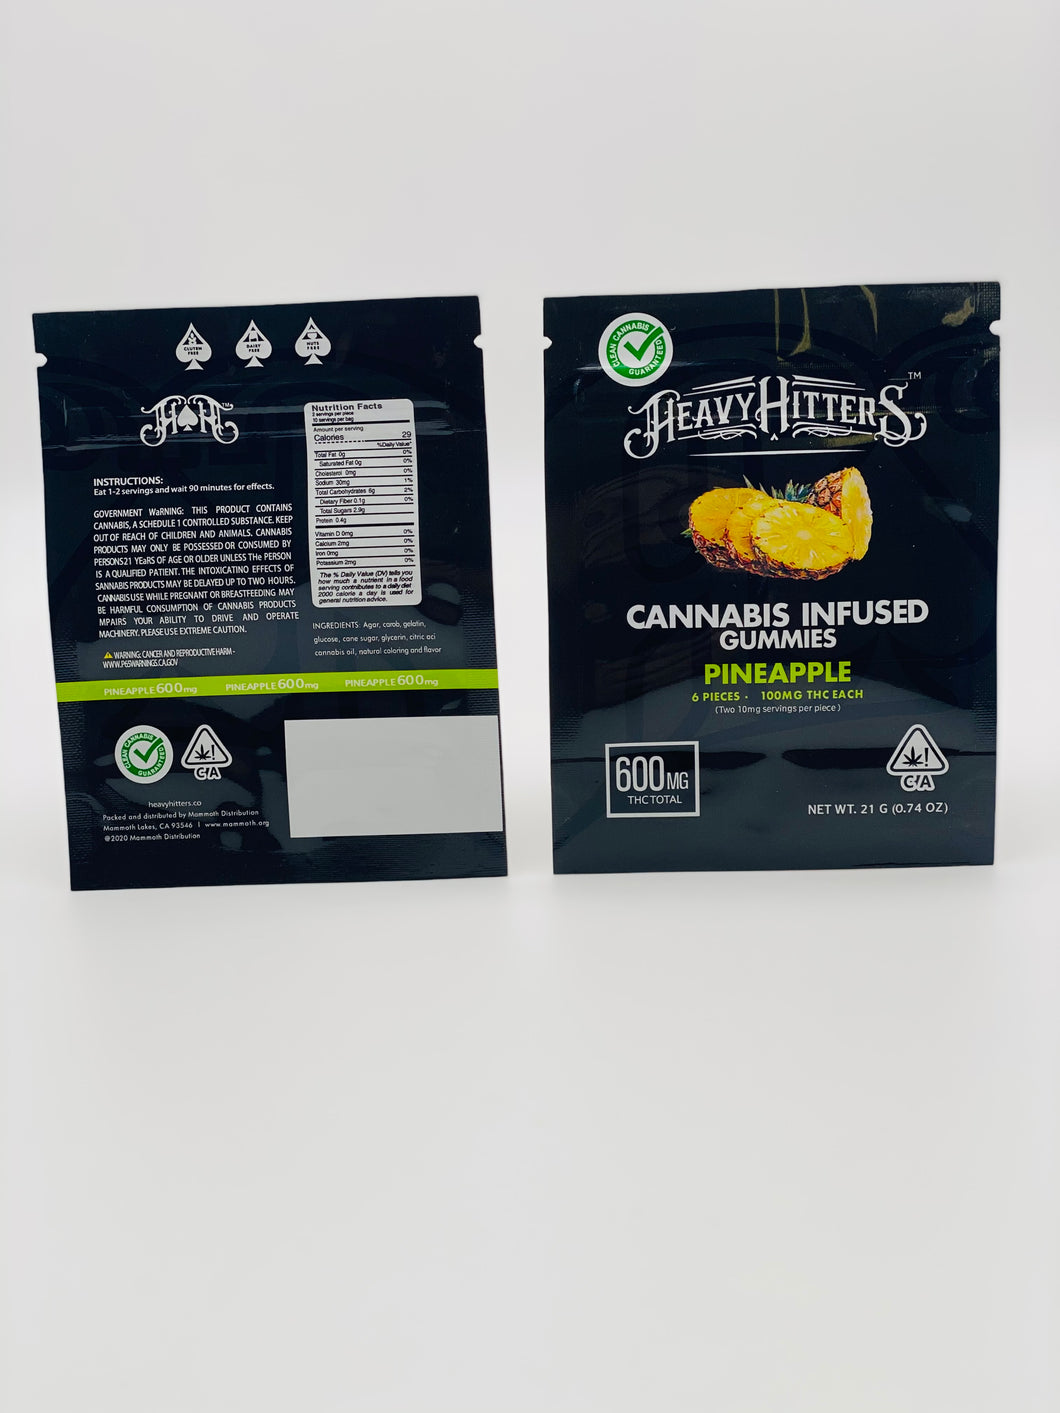 Heavy Hitters Pinapple Gummies Edibles